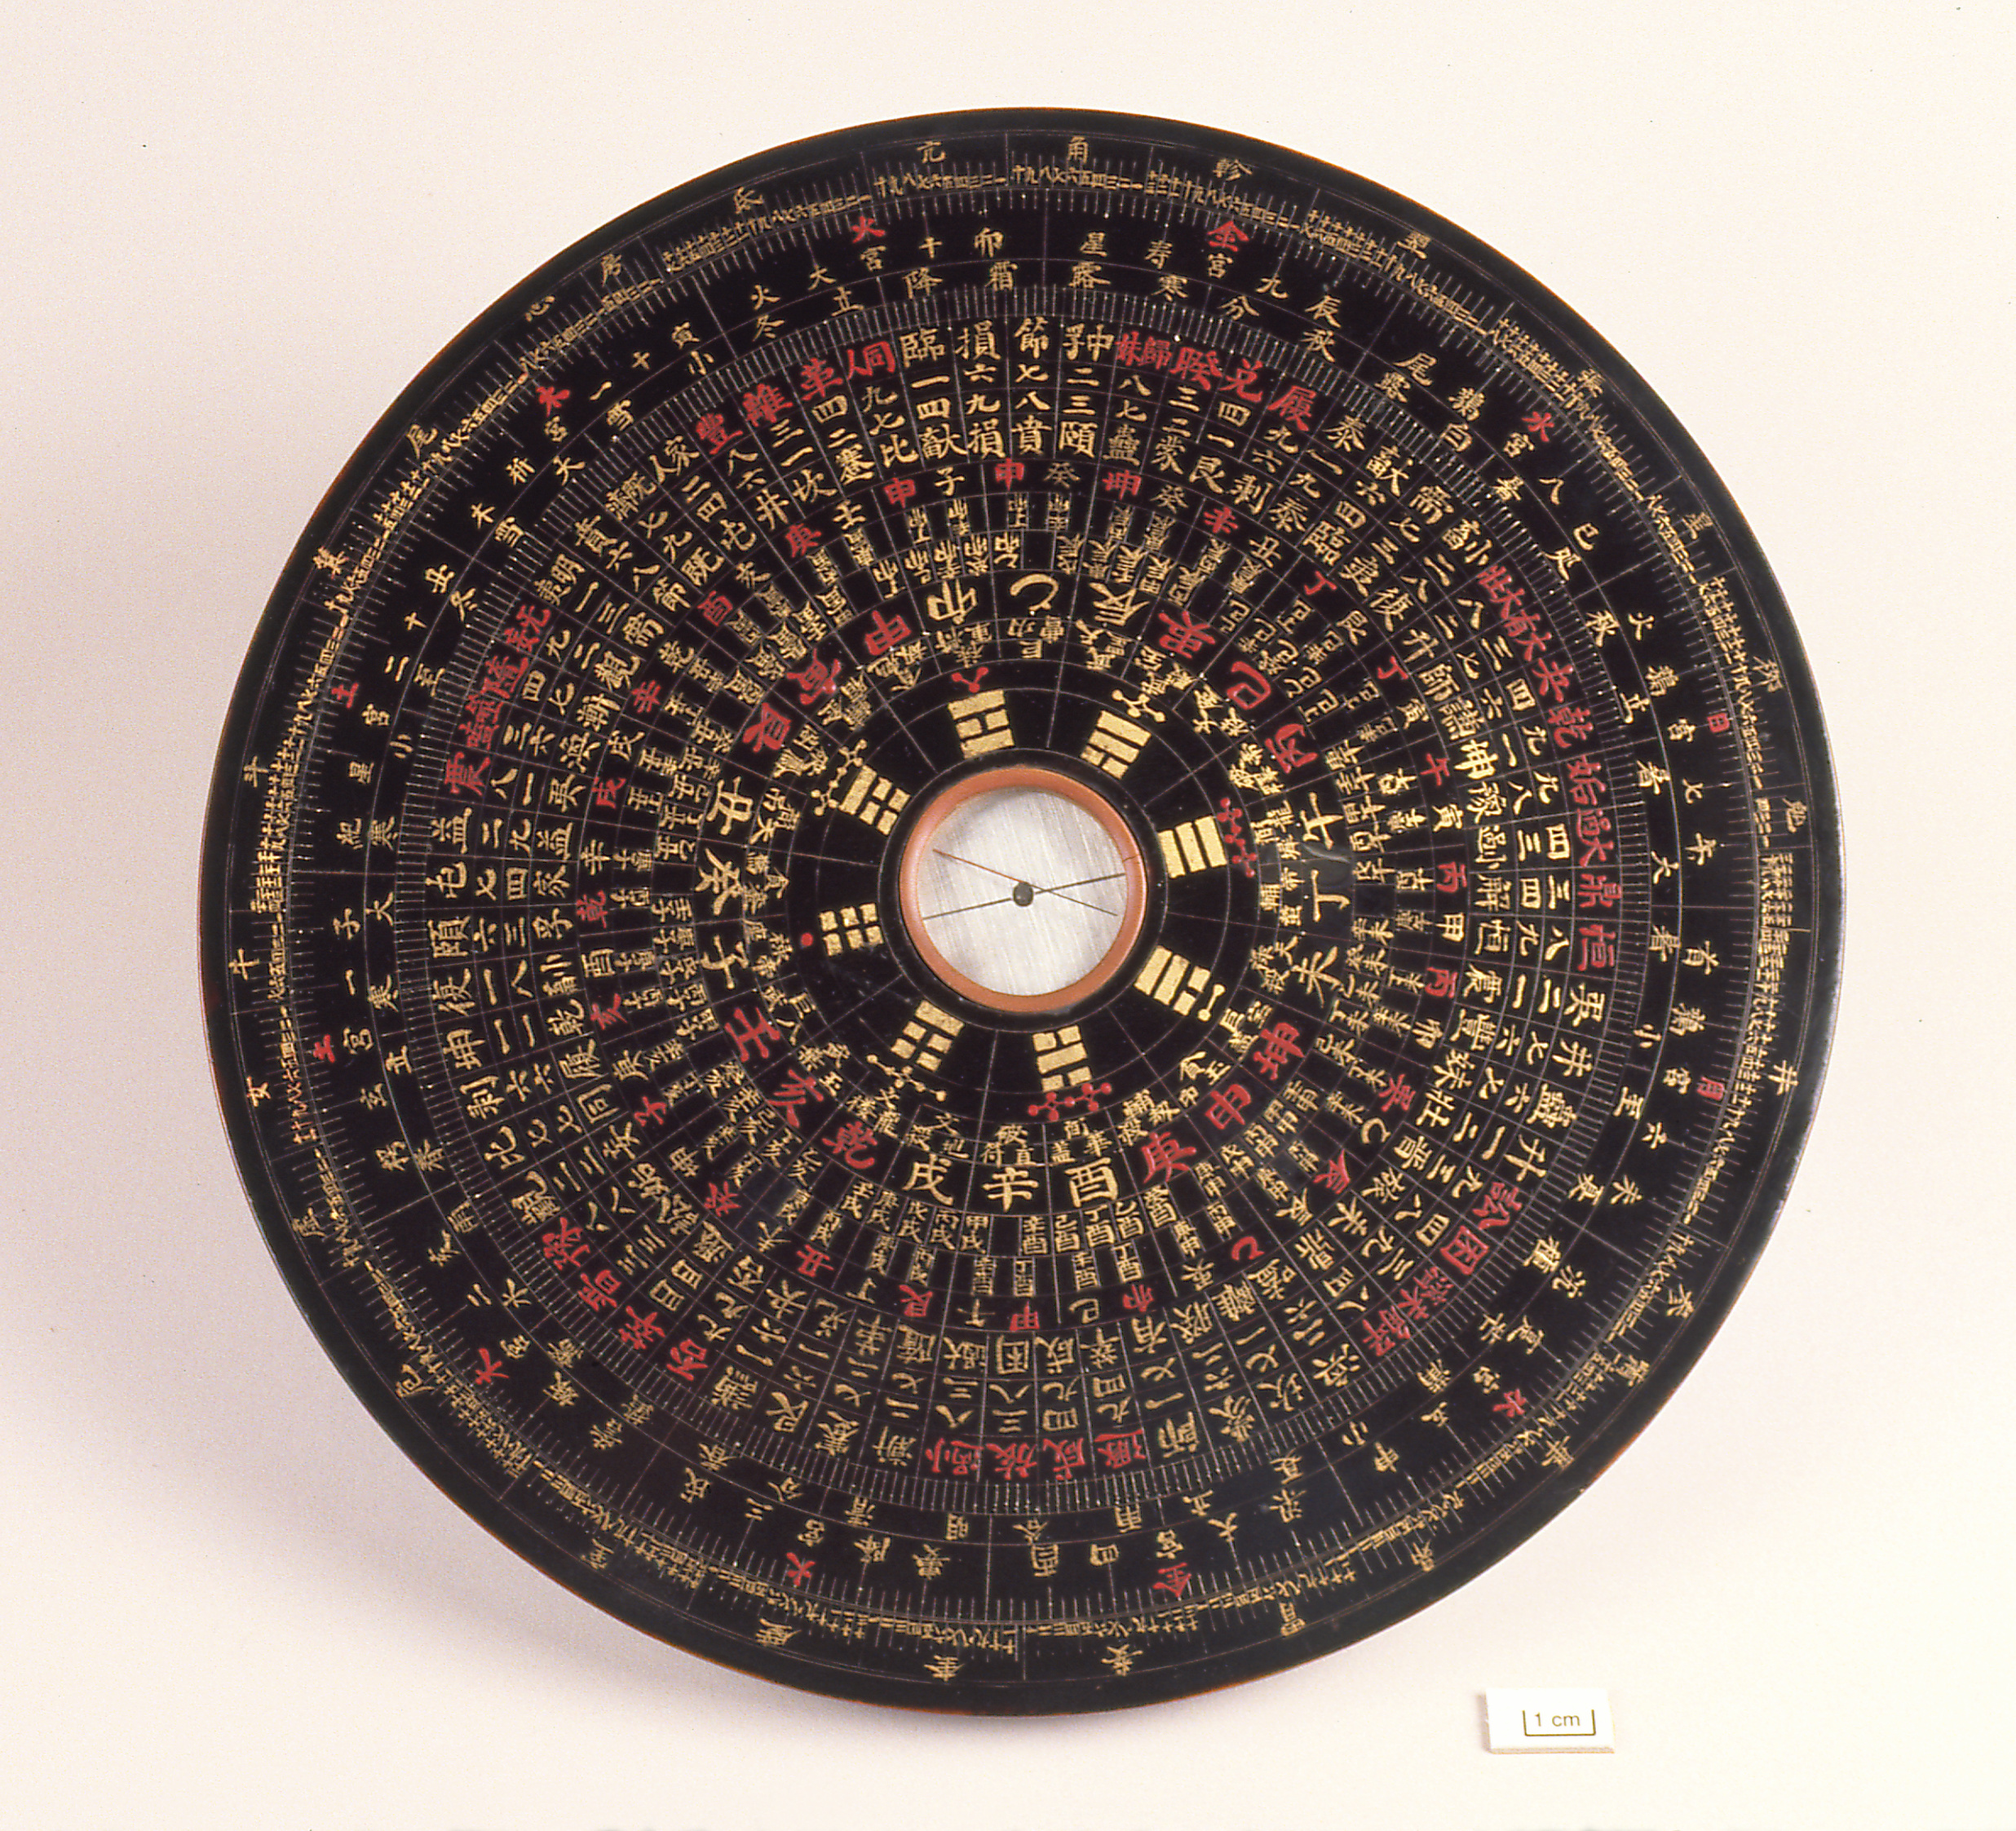 19th century Chinese astrological compass